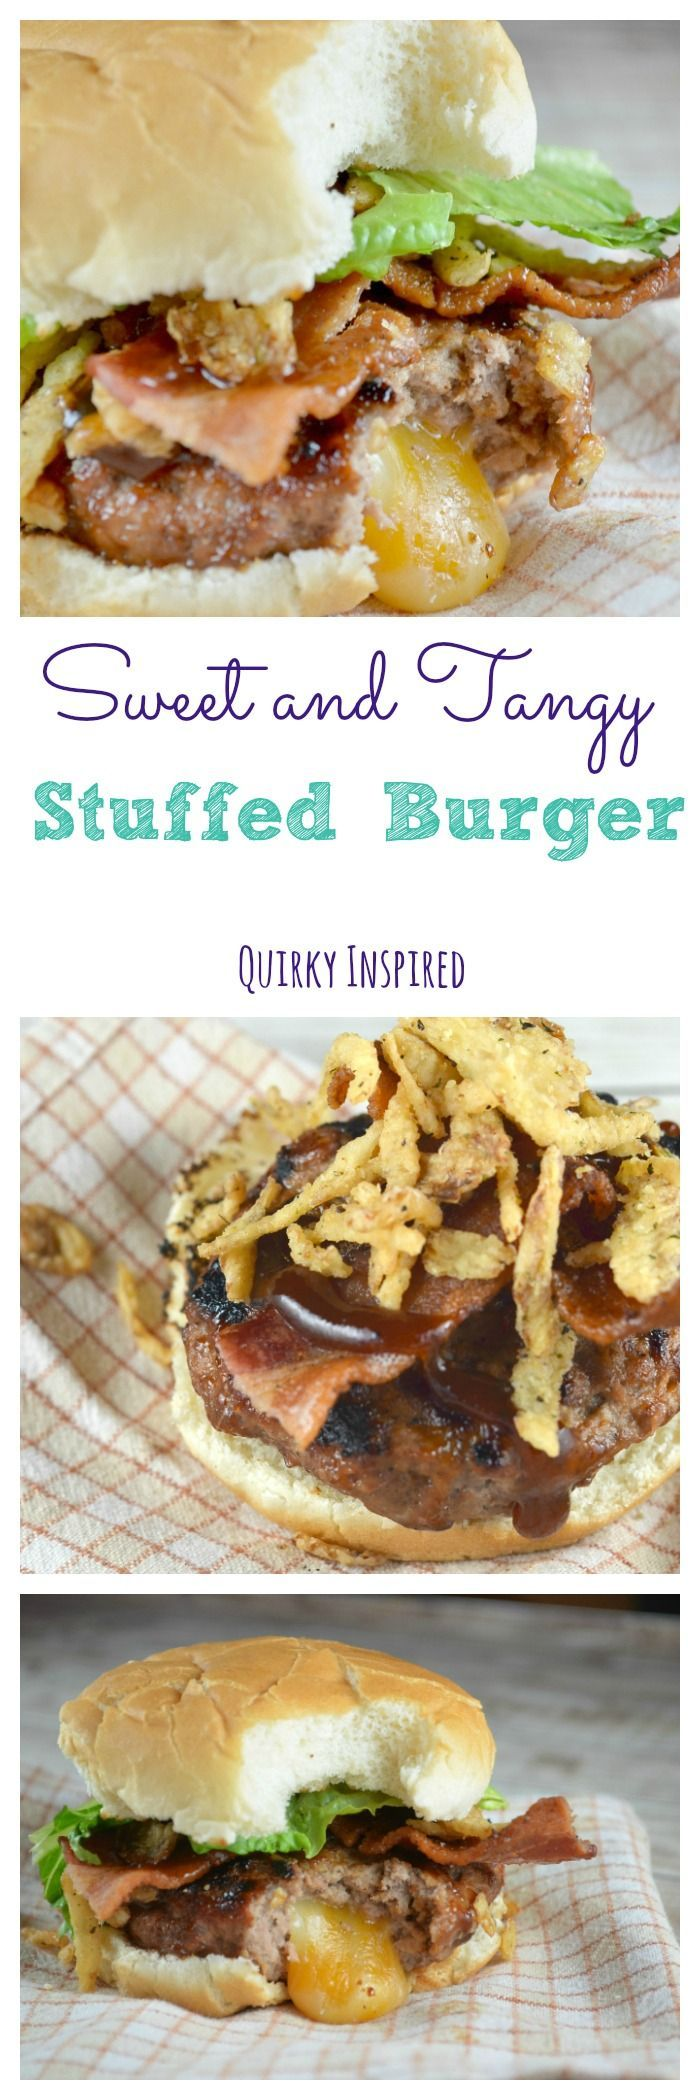 Friends don't let friends eat boring hamburgers. Stuffed hamburgers aren't complicated, especially with my handy dandy super tool. This stuffed burger recipes are punched with flavor. Love that it's sweet and tangy plus it's like making your own juicy lucy at home!  Click the pin for the full recipe, and to find out how I make them easy breezy!